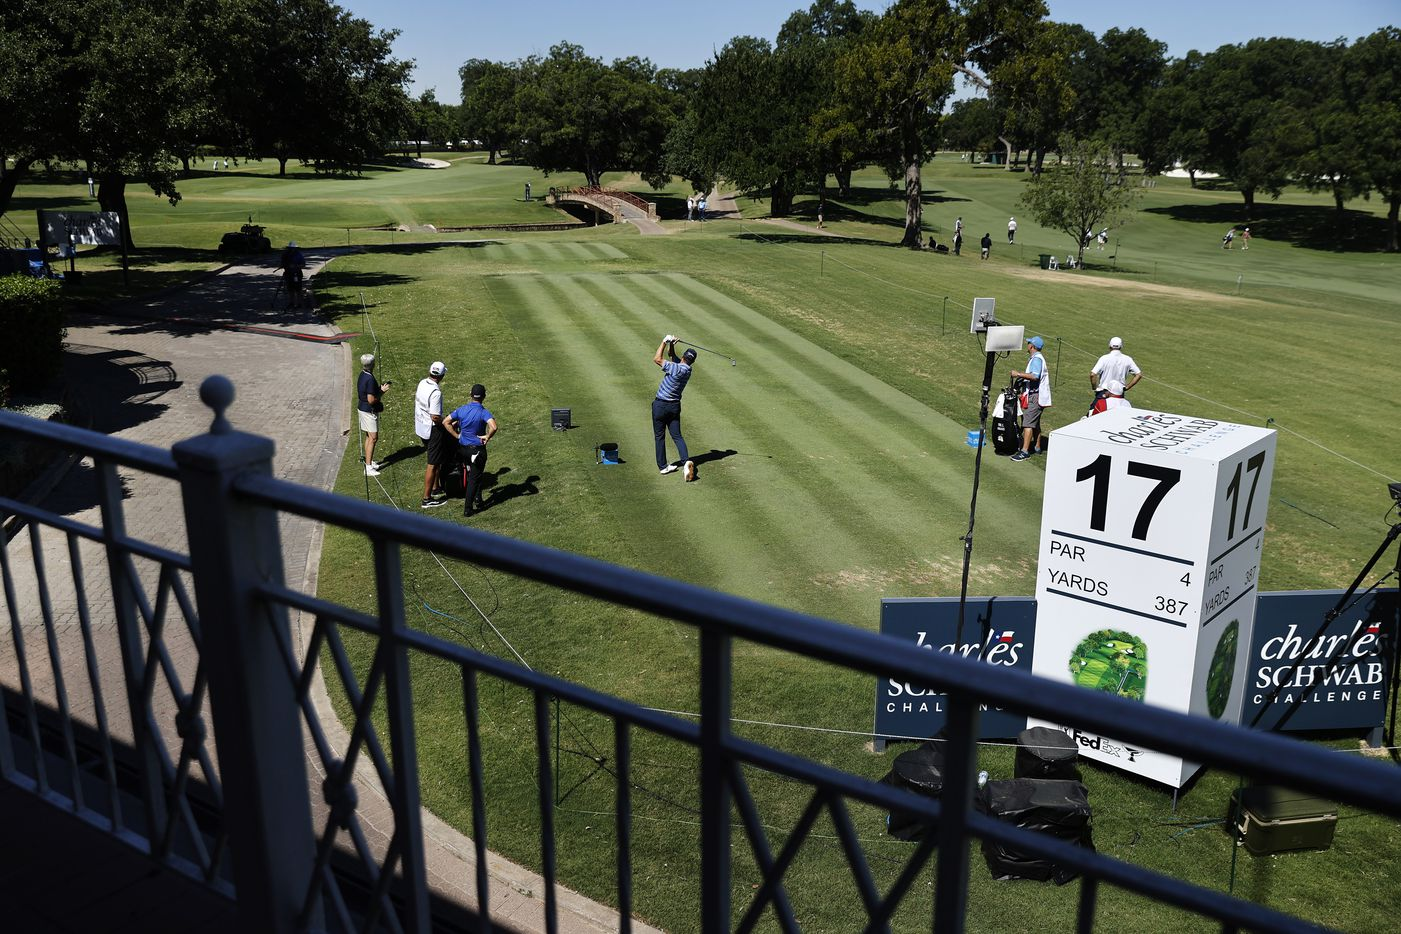 Before the absence of fans, PGA Tour golfer Ryan Palmer tees off on No. 17 during the opening round of the Charles Schwab Challenge at the Colonial Country Club in Fort Worth, Thursday, June 11, 2020.  The Challenge is the first tour event since the COVID-19 pandemic began. (Tom Fox/The Dallas Morning News)